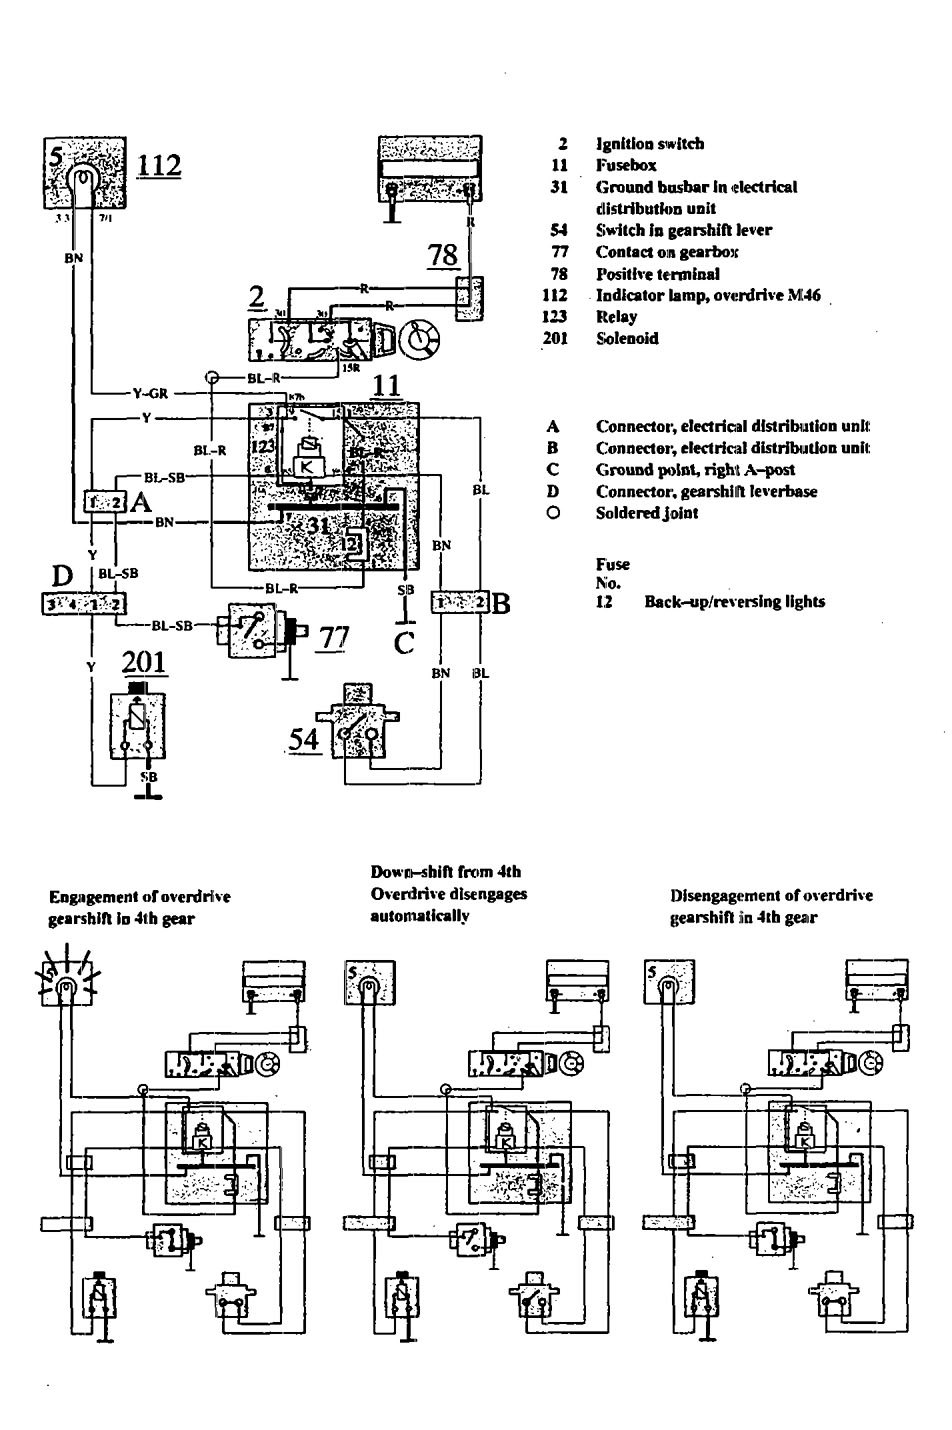 hight resolution of volvo 940 overdrive wiring diagram wiring diagram blog volvo 940 wagon 1993 overdrive fuse diagram